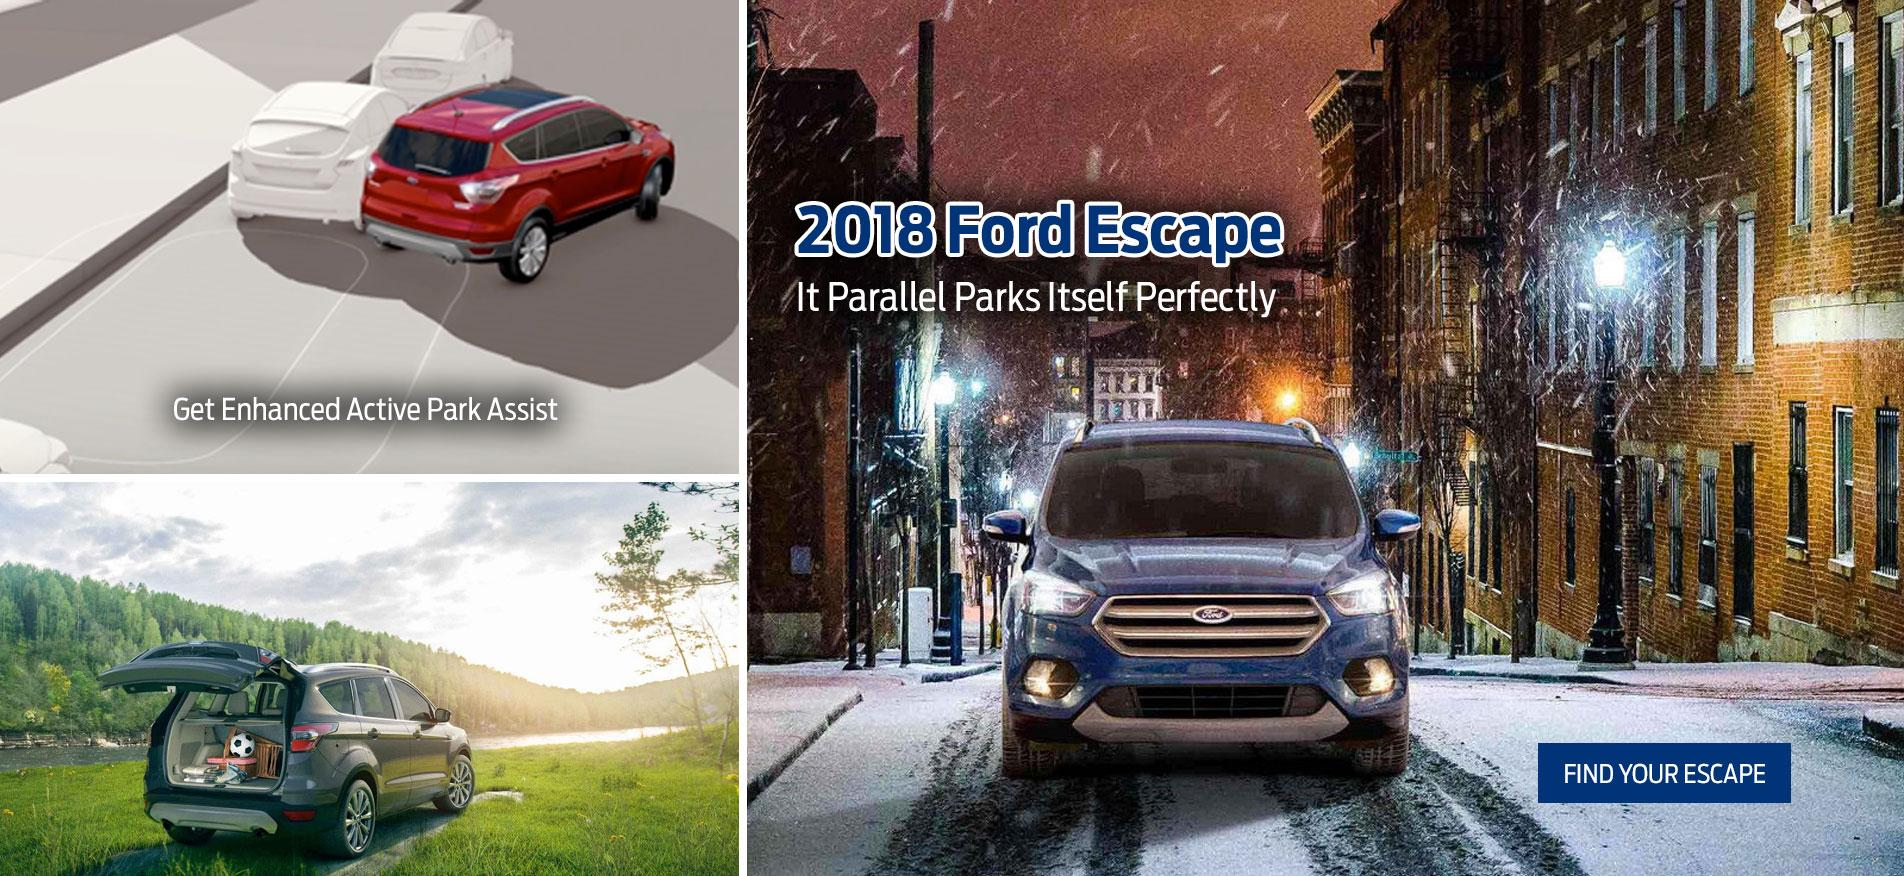 2018 Escape Merlin Ford Saskatoon